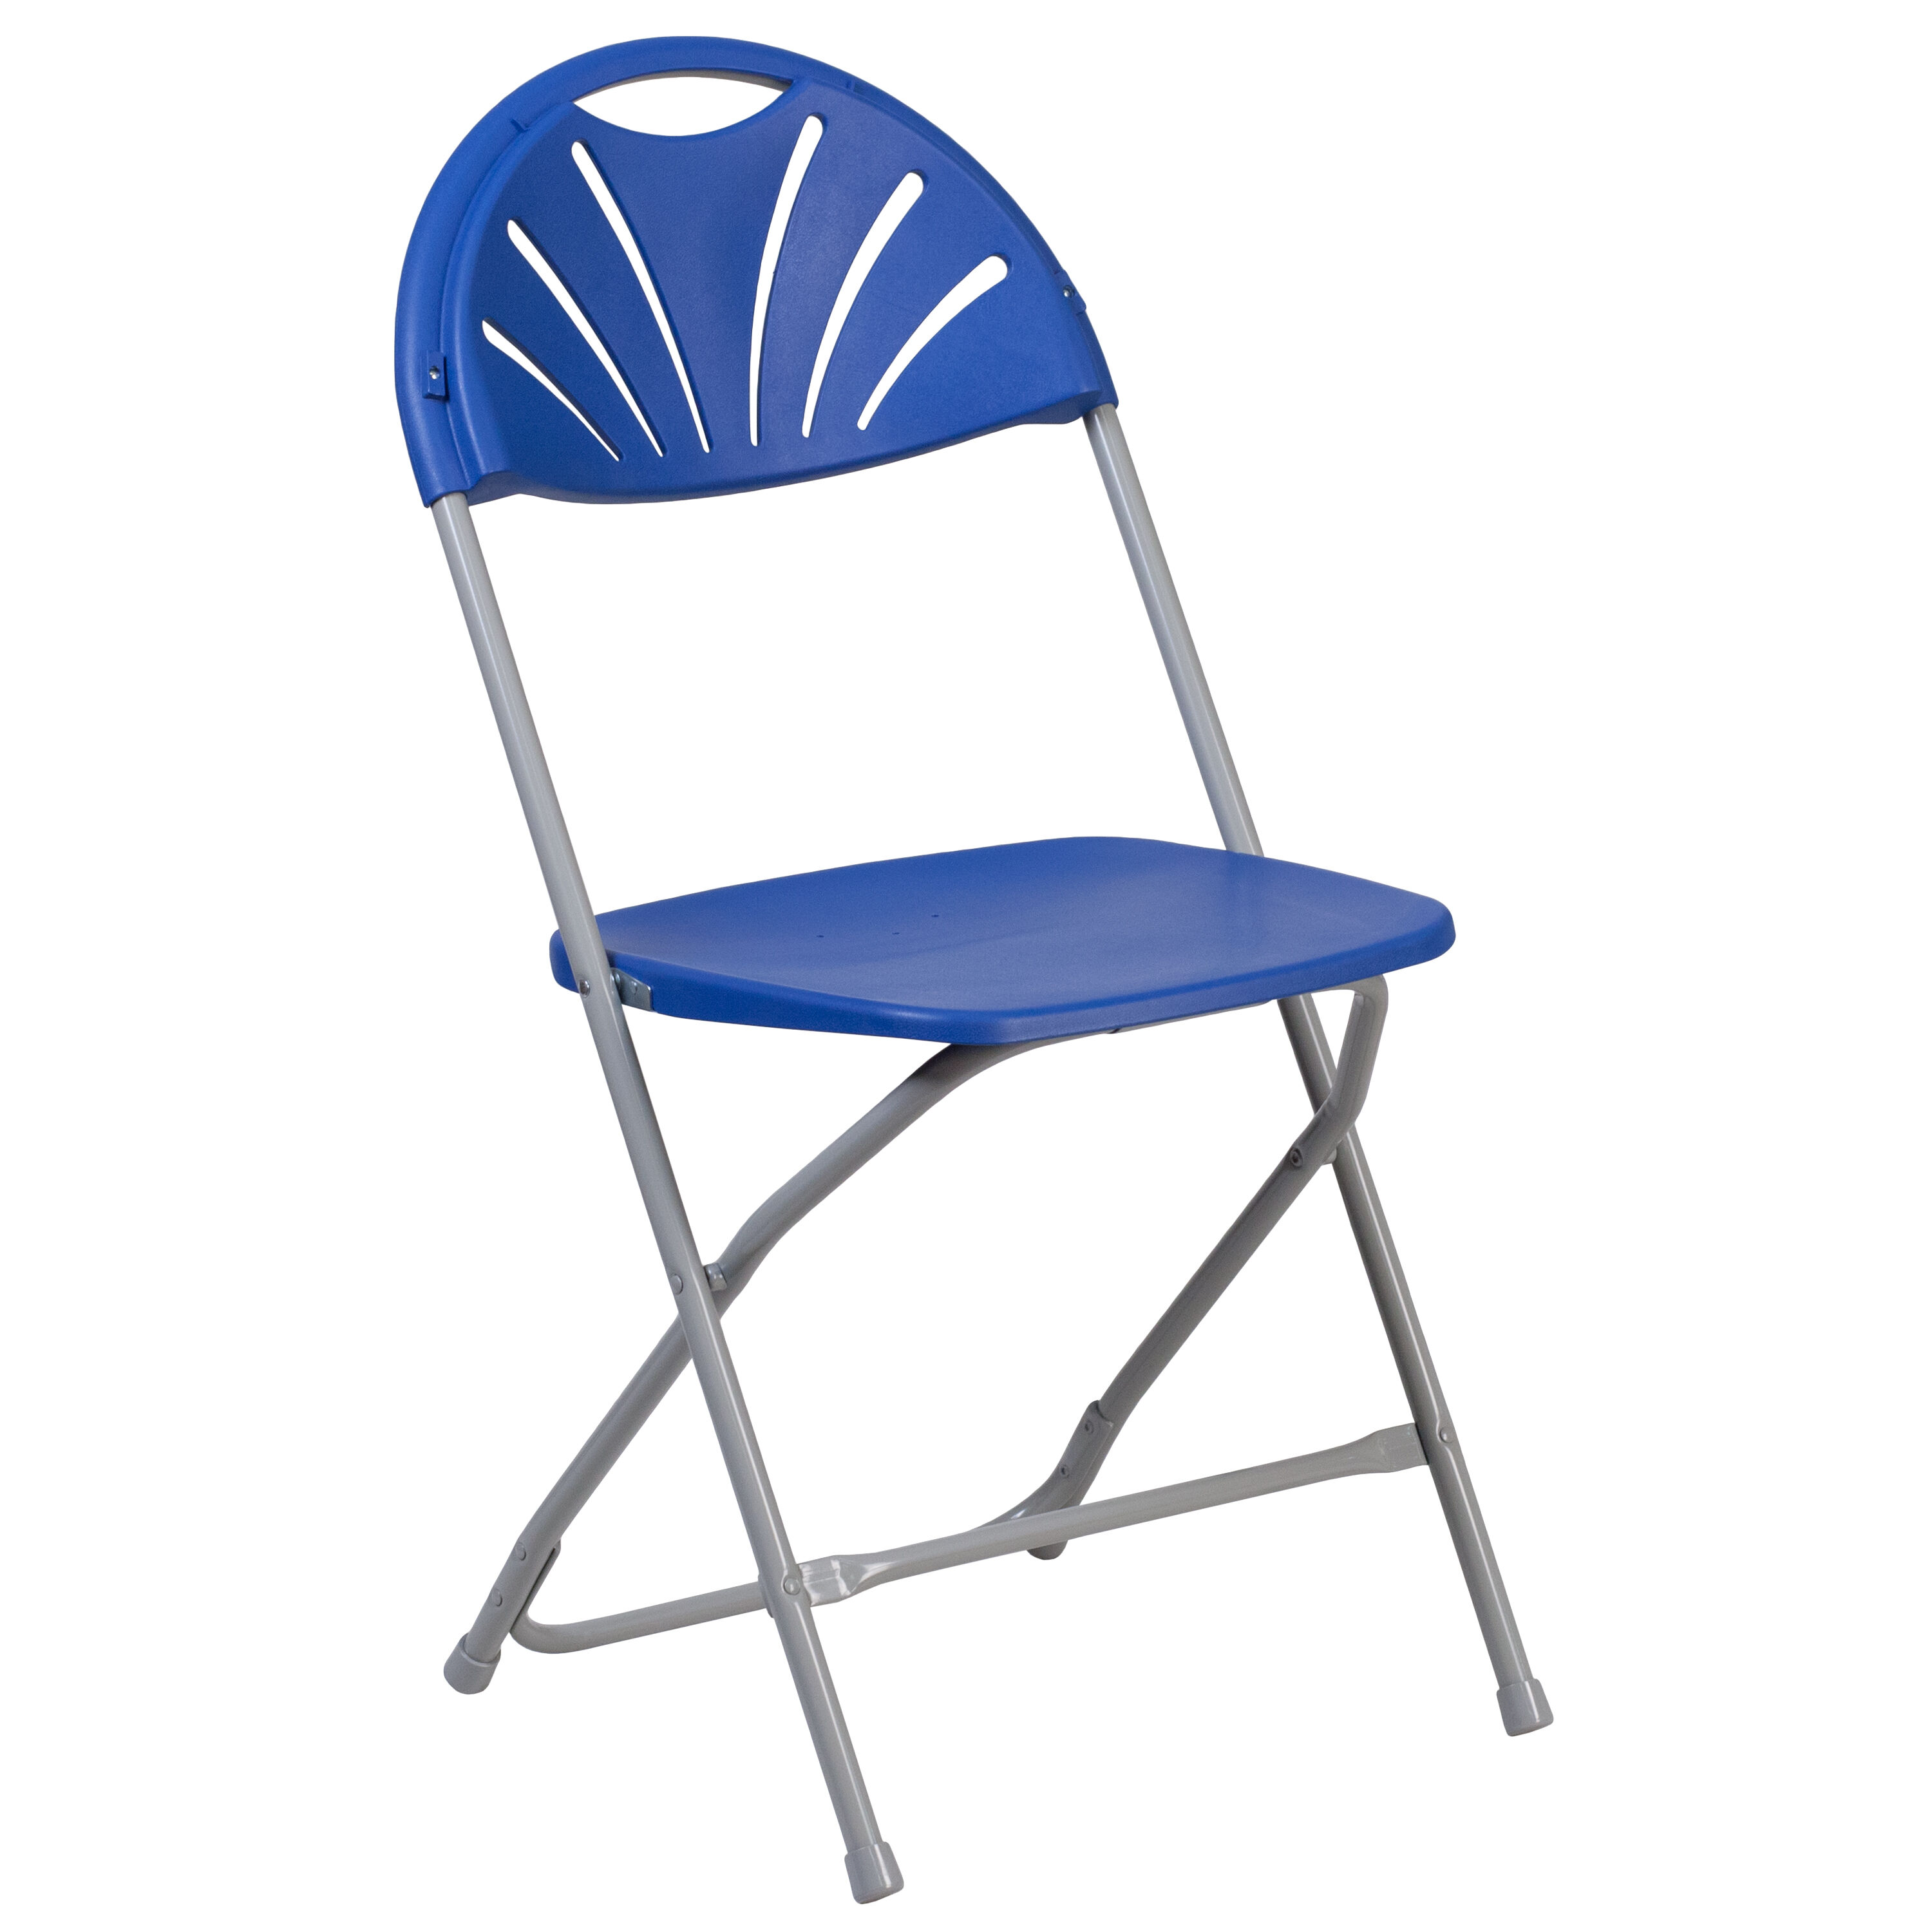 Blue Folding Chairs Blue Plastic Folding Chair Le L 4 Bl Gg